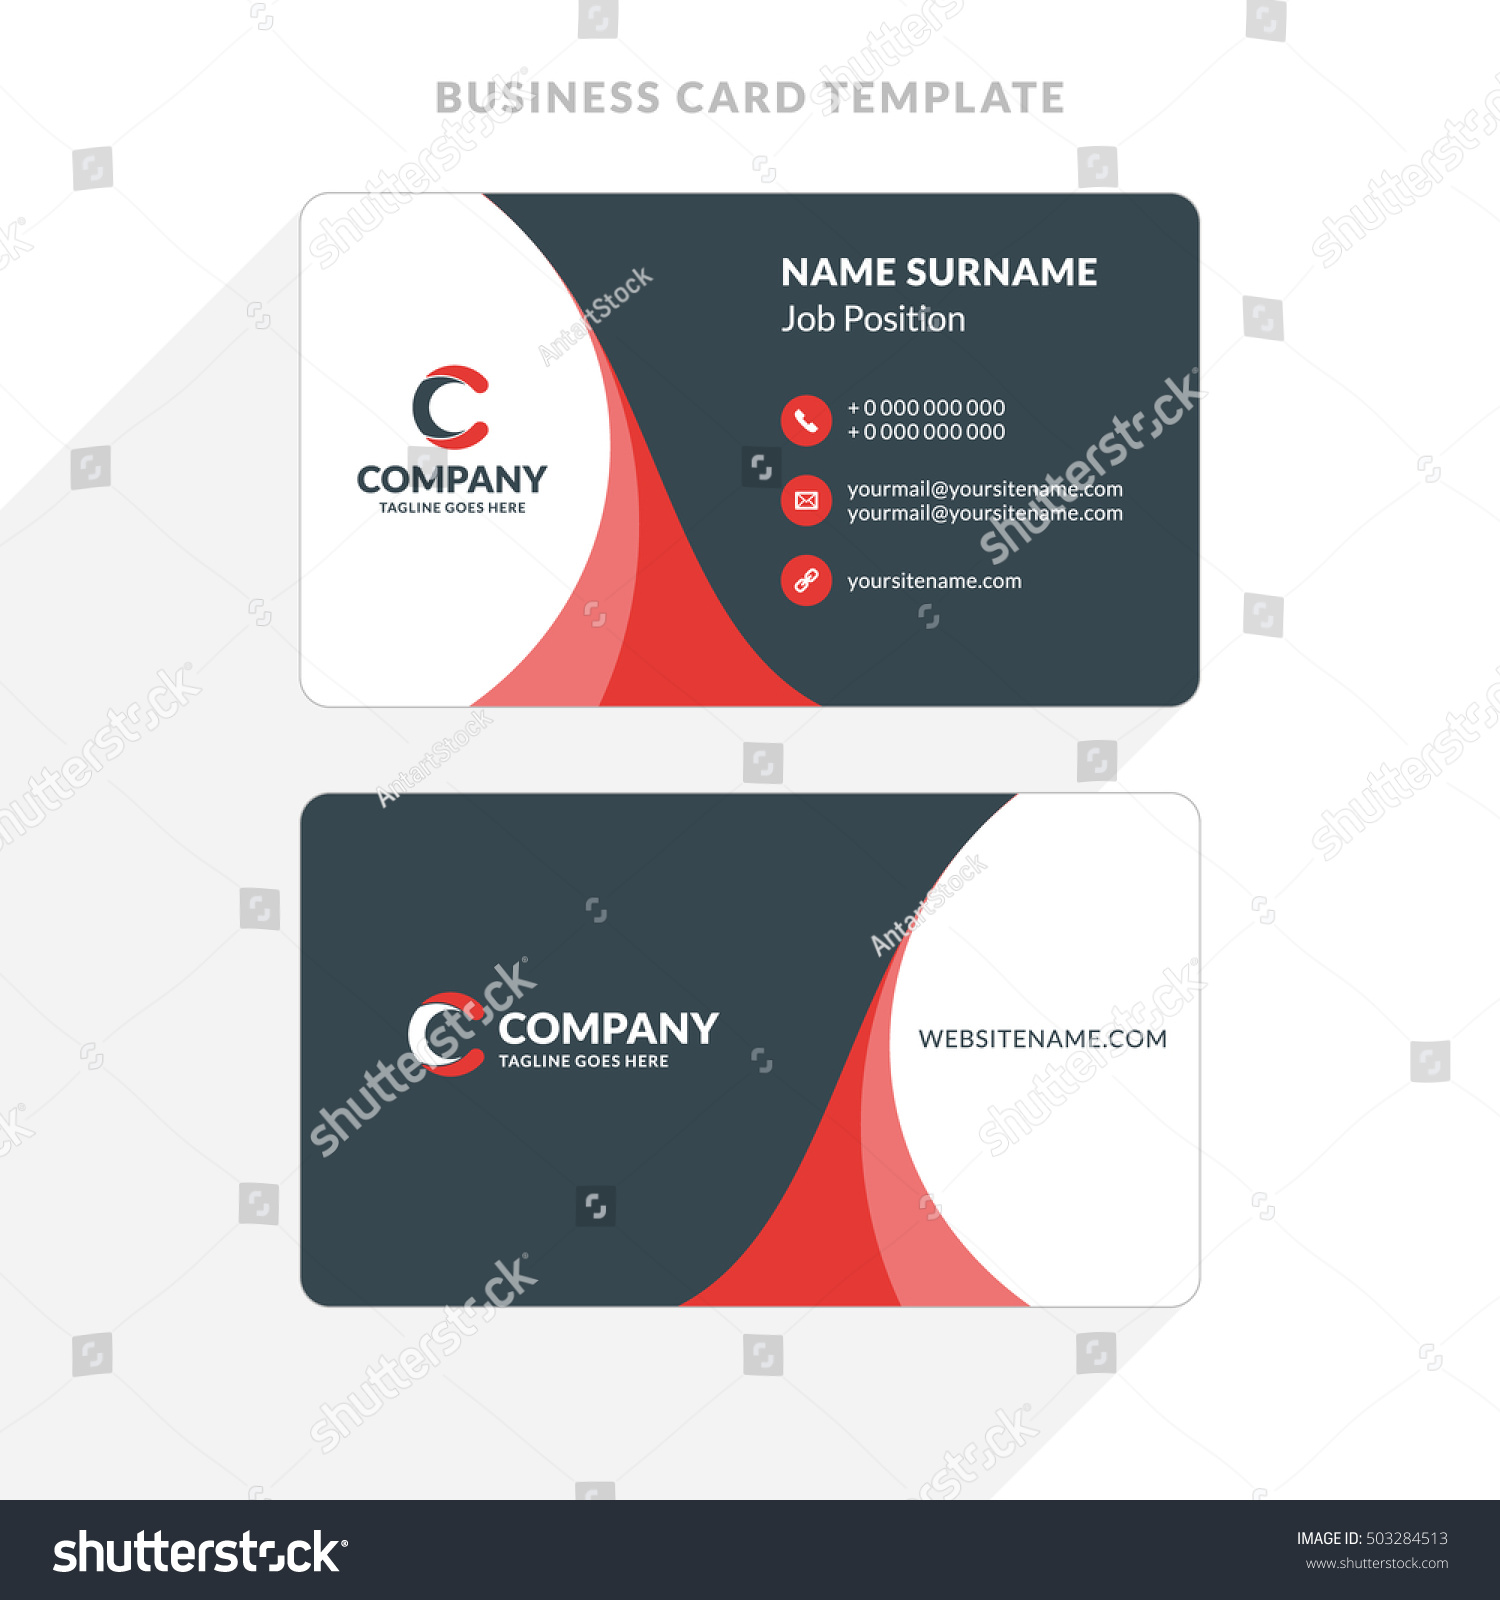 Creative clean doublesided business card template stock vector creative and clean double sided business card template red and black colors flat cheaphphosting Gallery